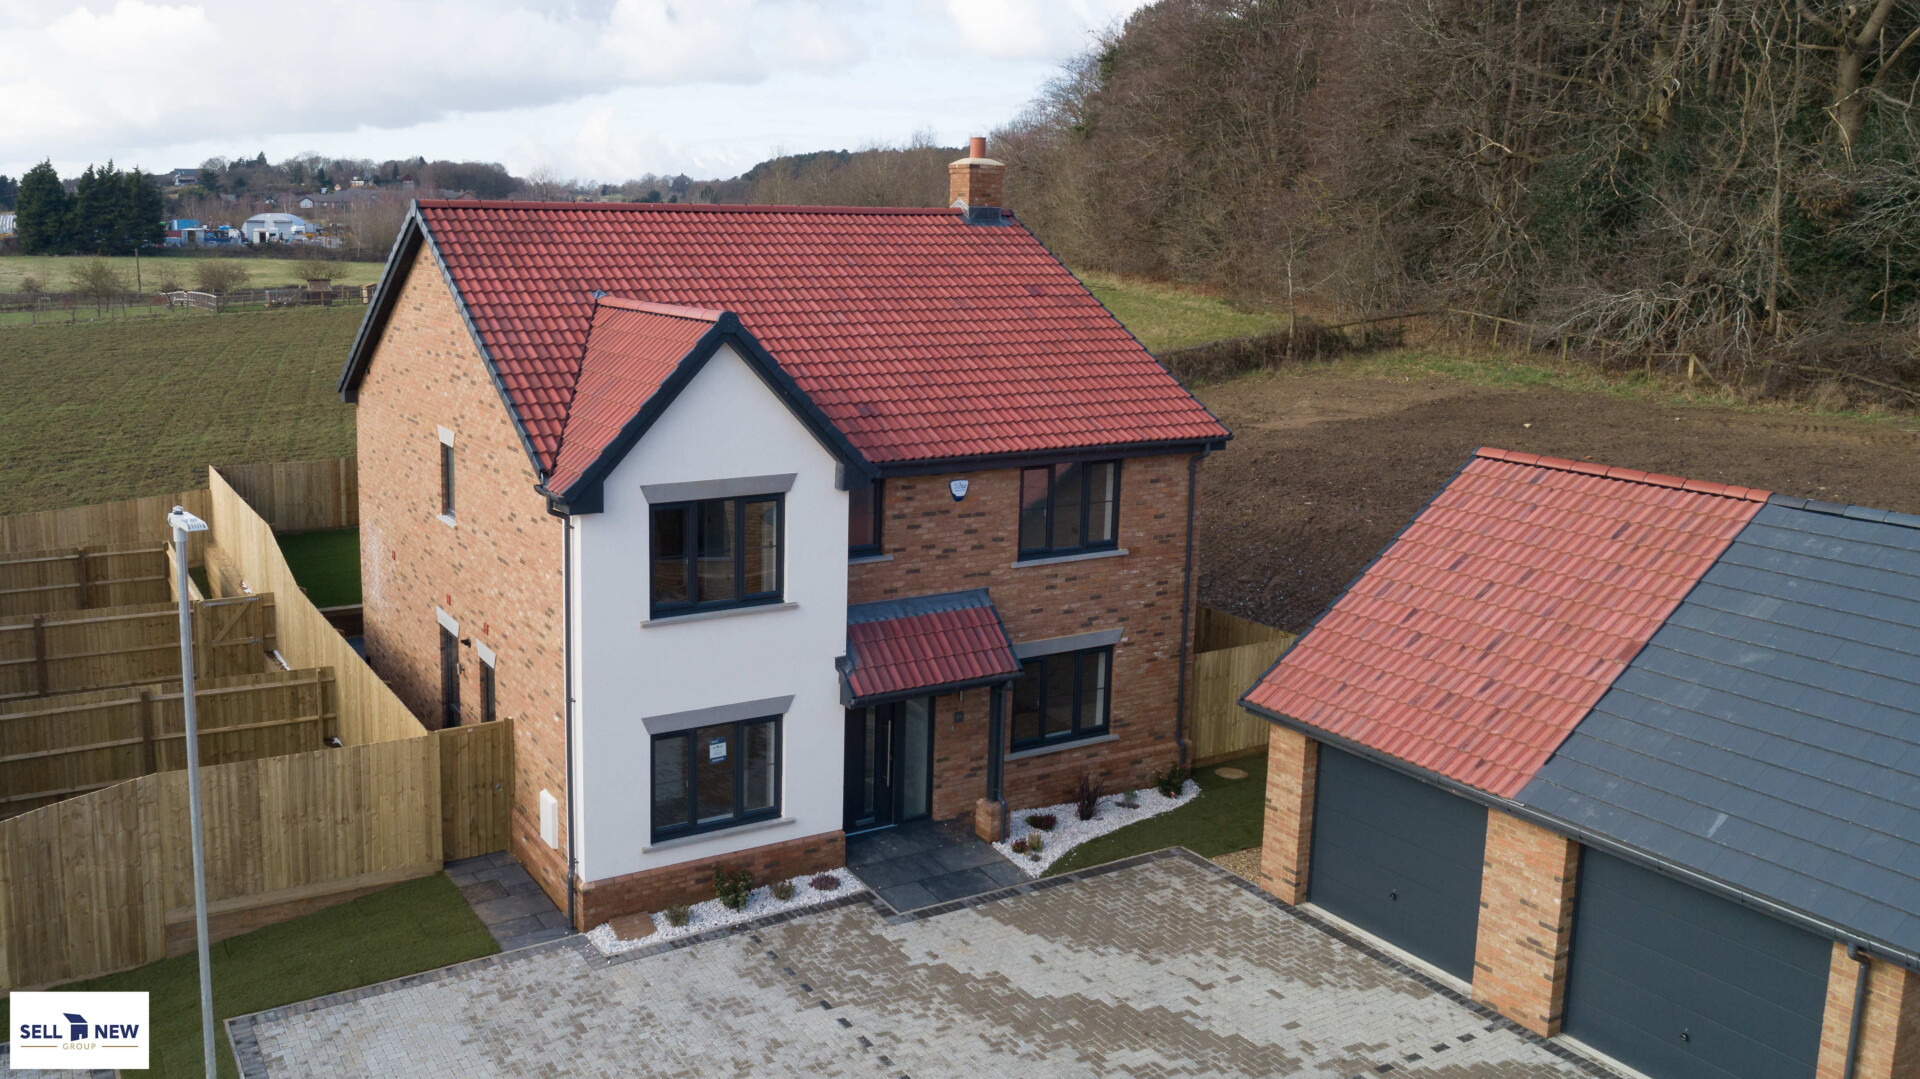 Plot 10 Woodland Gardens, Maulden – Four bedroom detached with nature and wood views to side